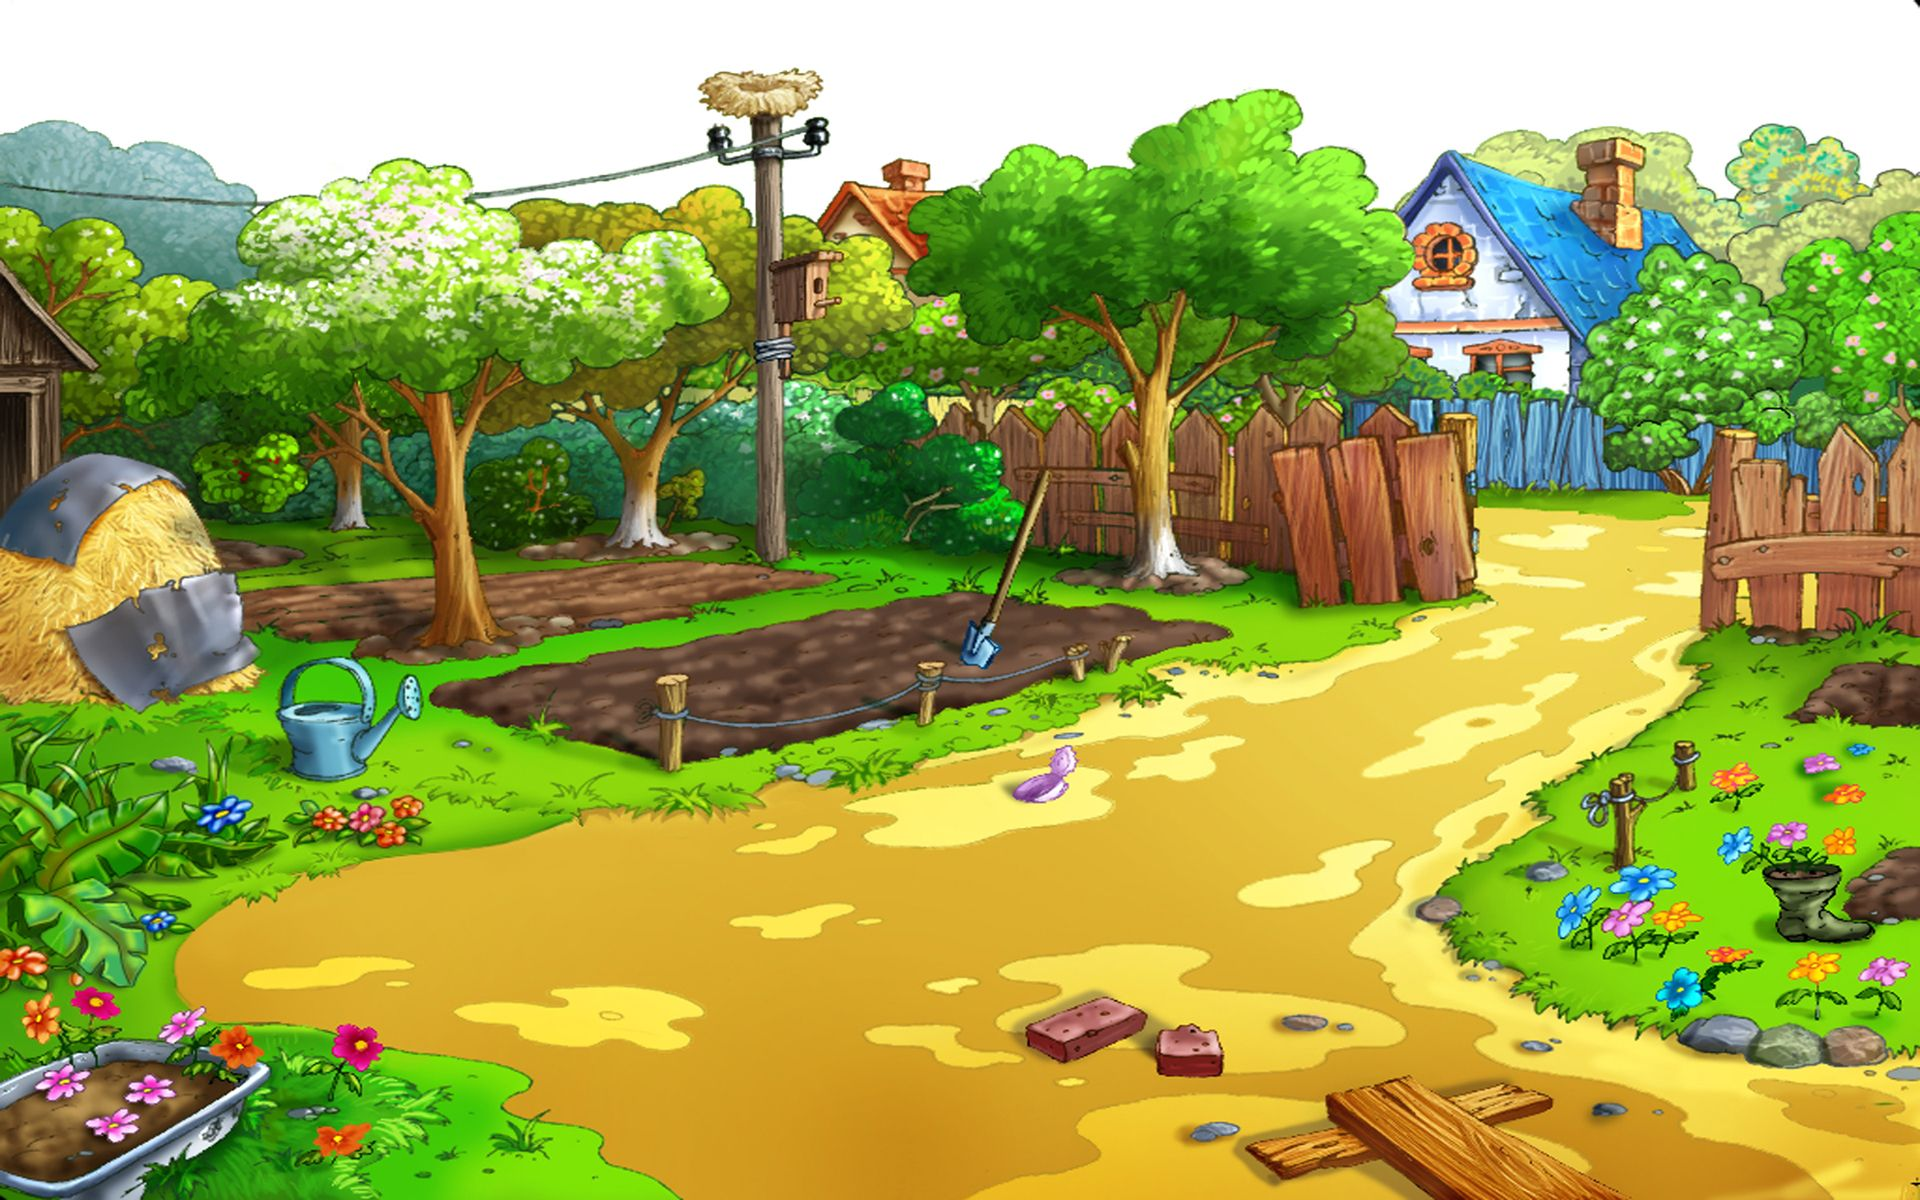 Cartoon Landscape Backgrounds Hdwallie Hd Wallpapers Objek